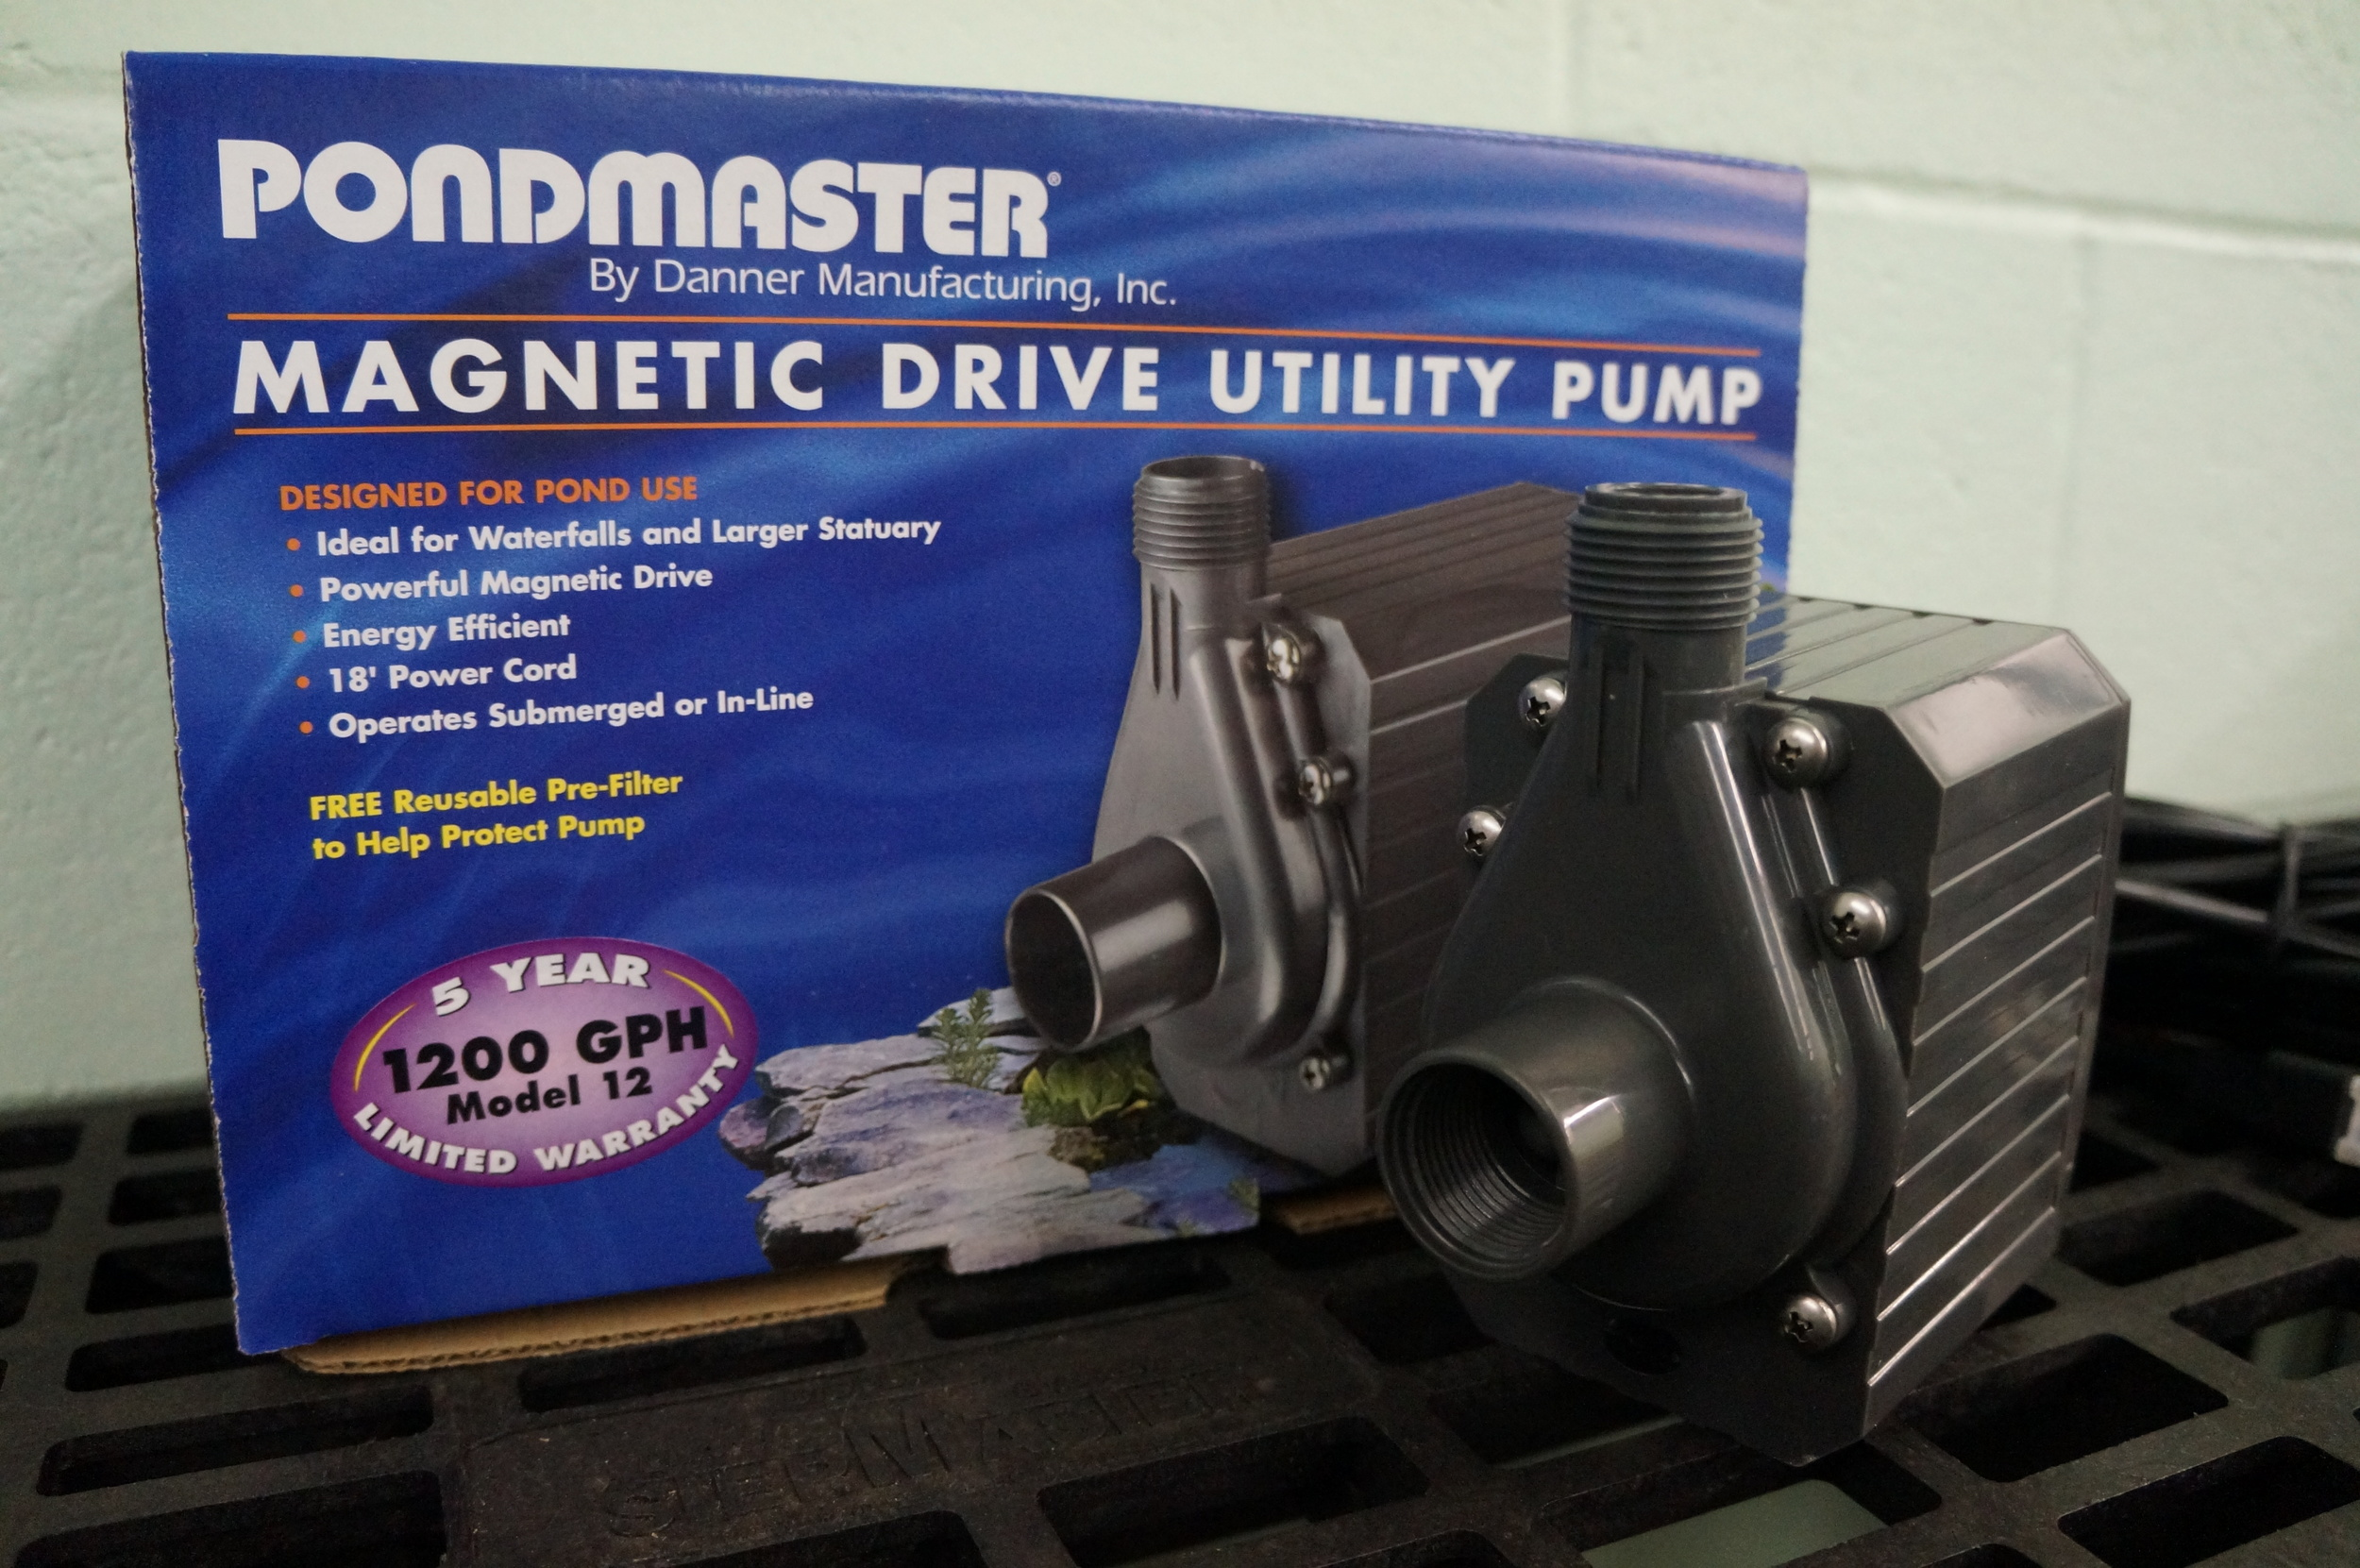 Mag Drive 1200 GPH Pump | Mag Drive 1800 GPH Pump & 2400 GPH Pump (not photographed)